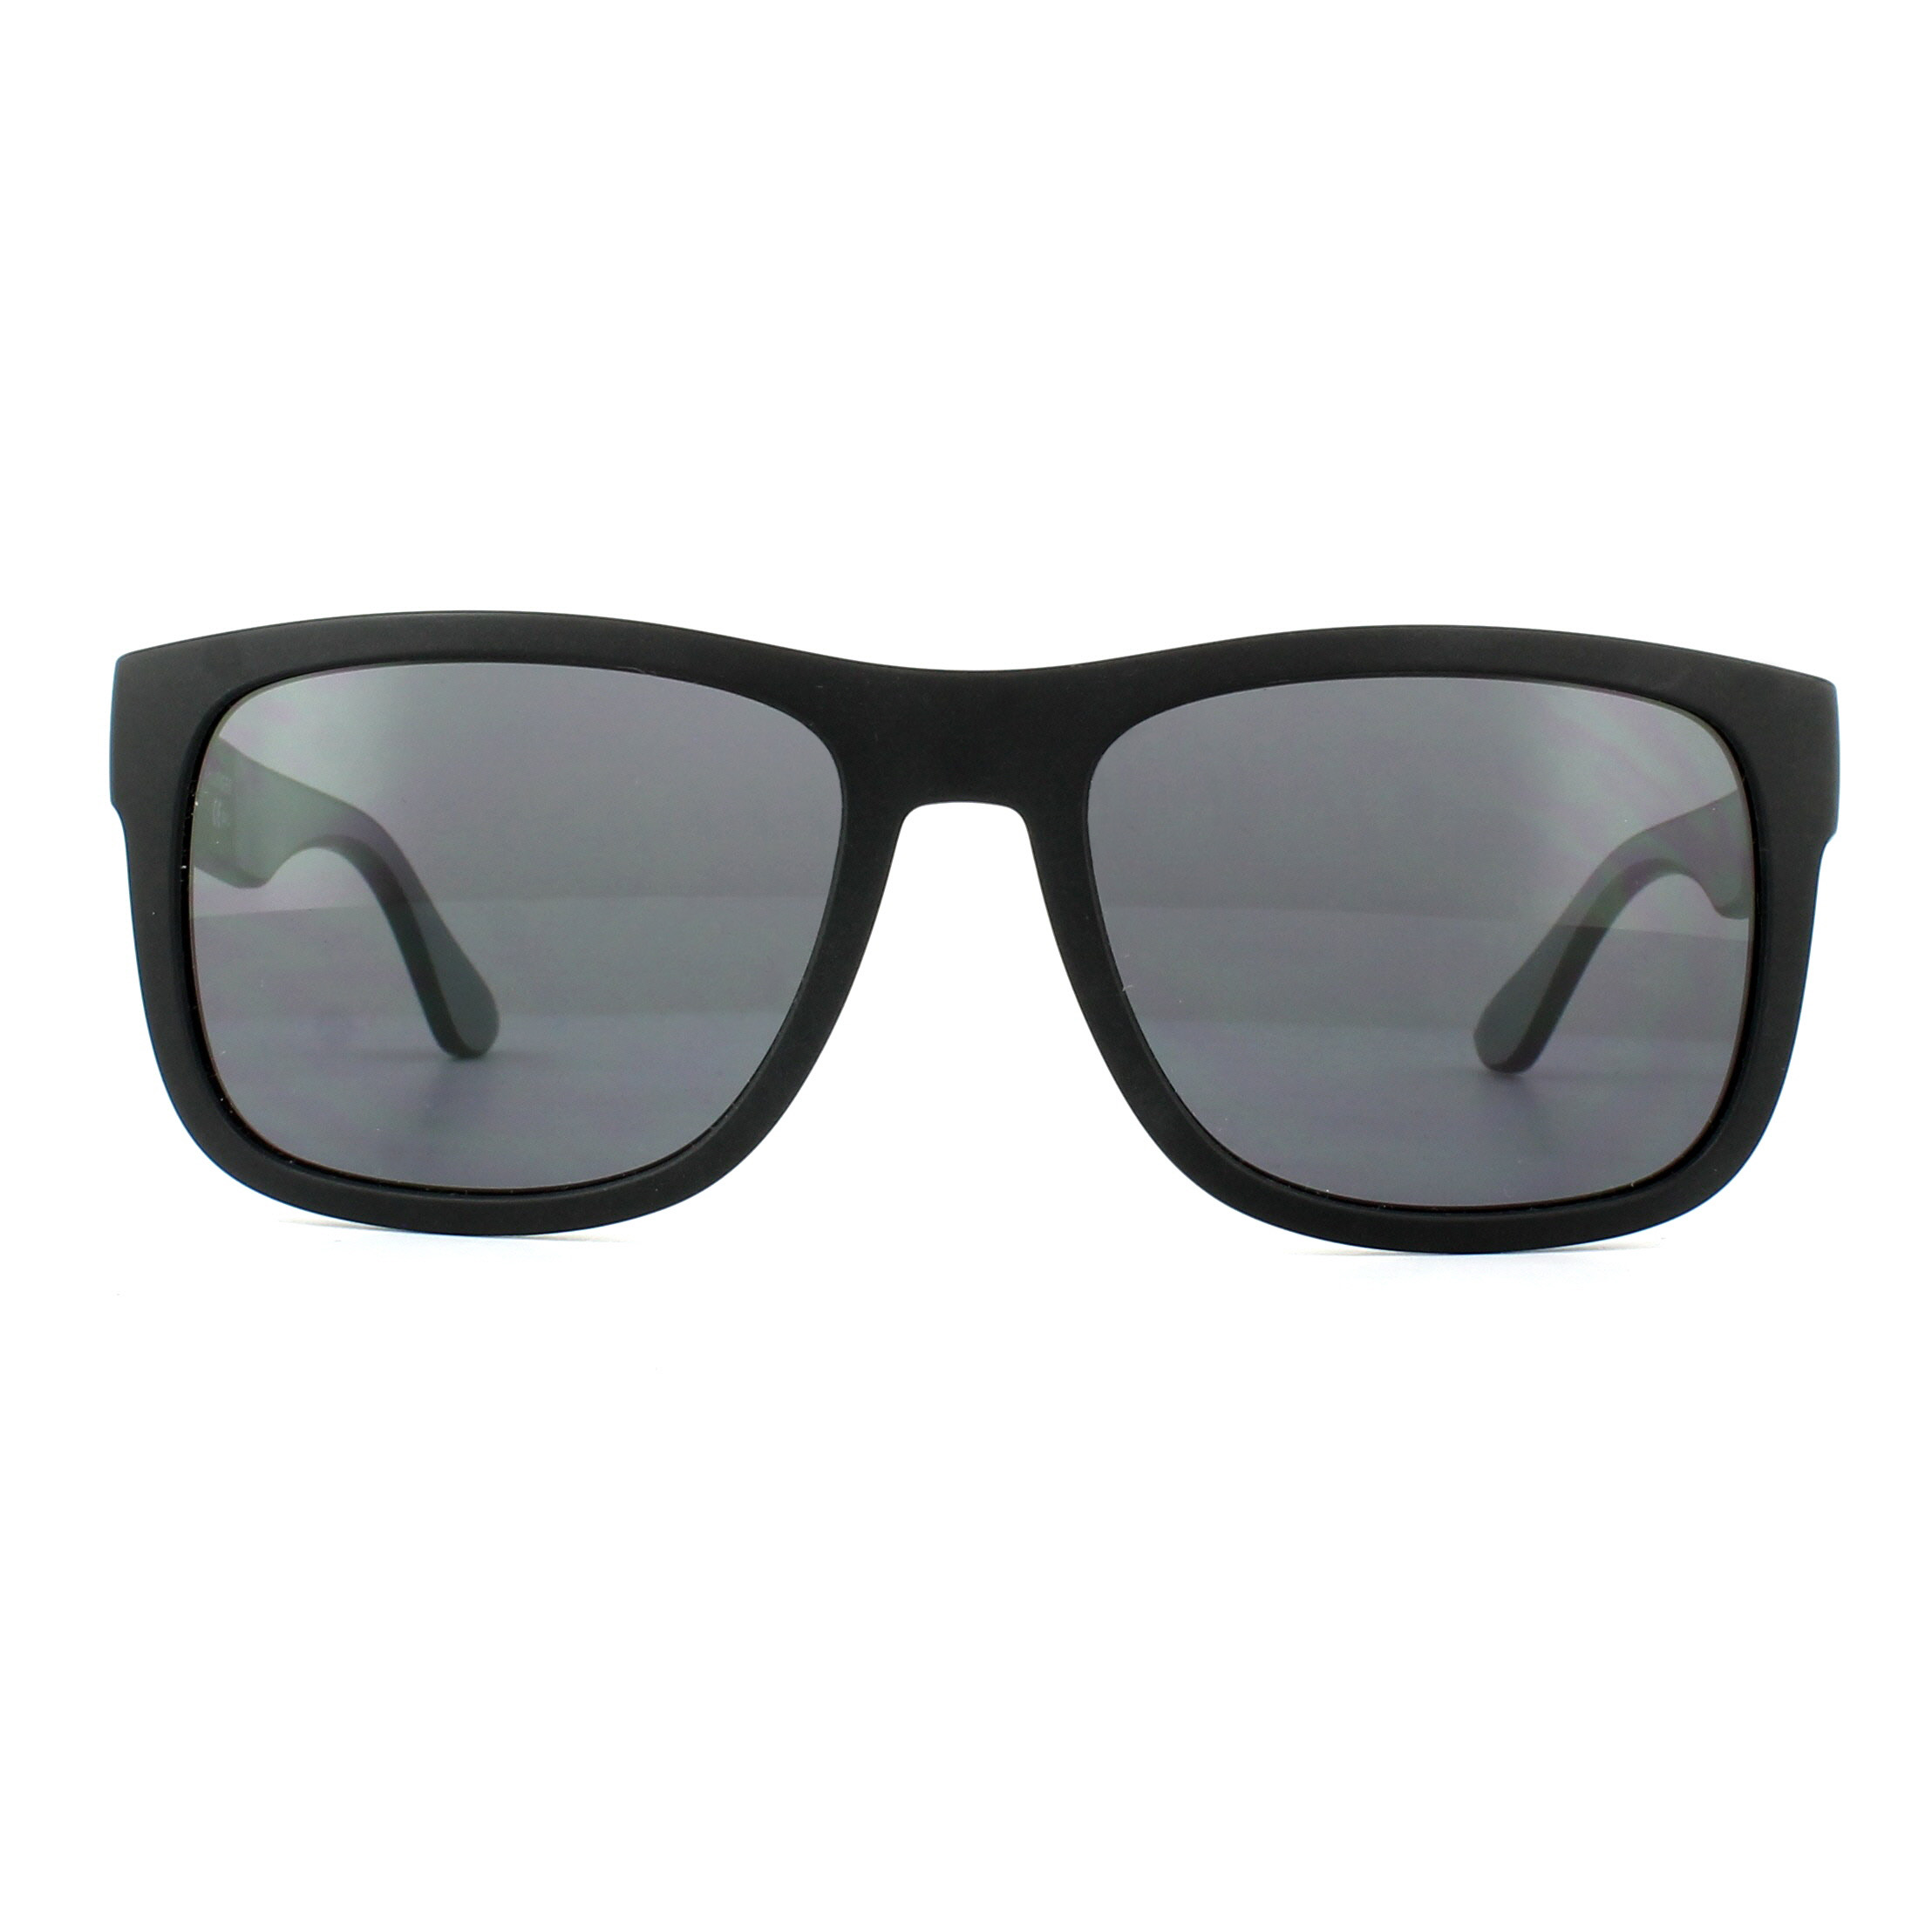 a2d9761fc9 Sentinel Tommy Hilfiger Sunglasses TH 1556/S 08A IR Black Grey